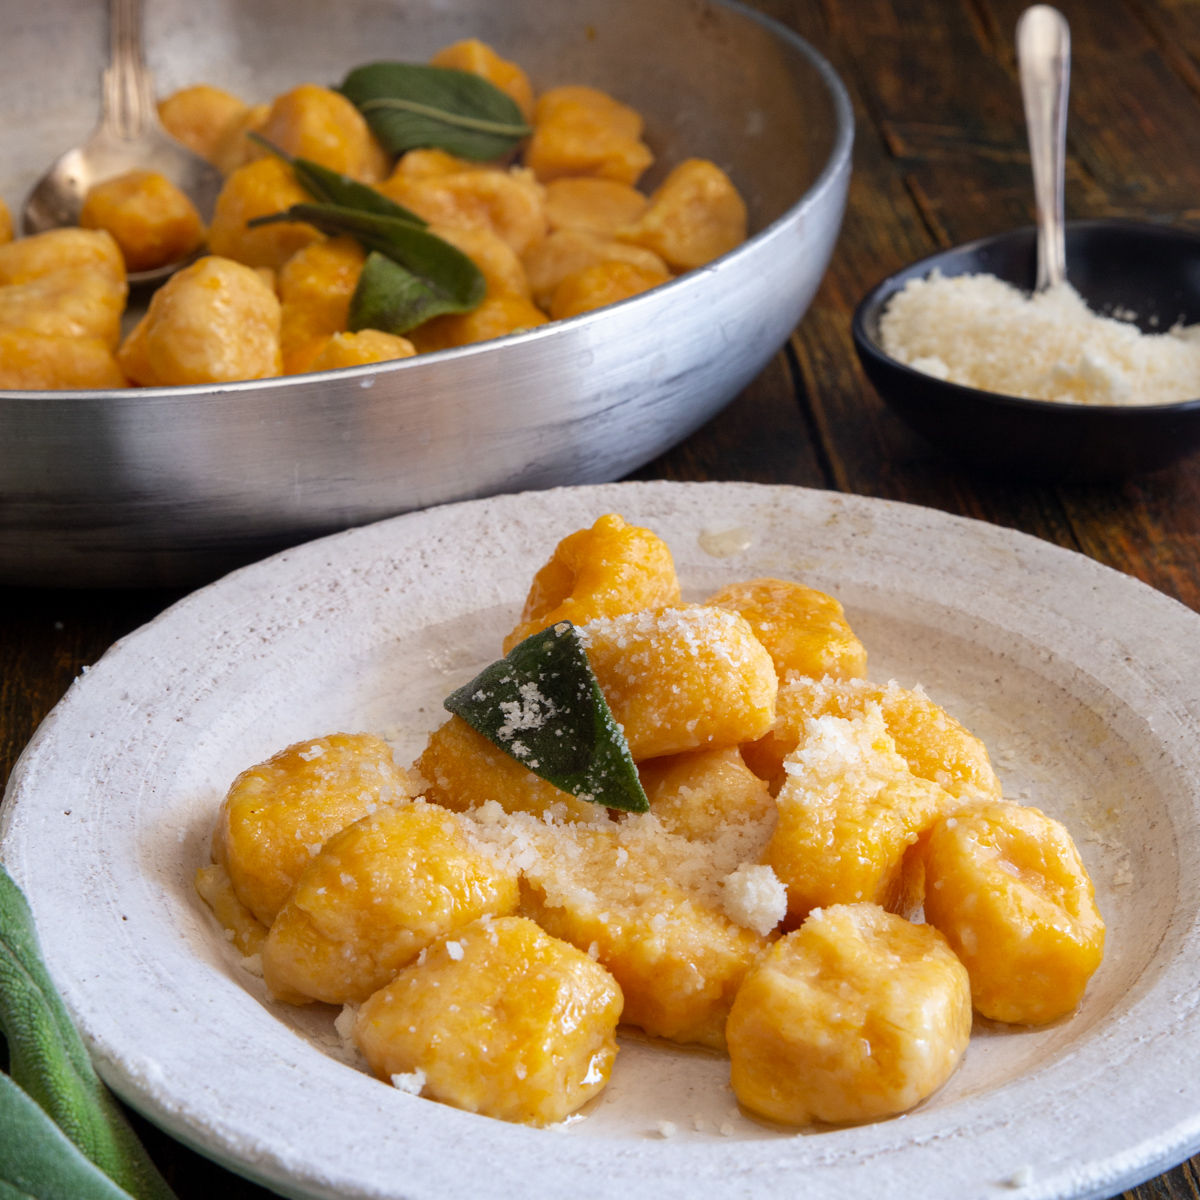 Pumpkin gnocchi in a white plate and some in a silver pan.